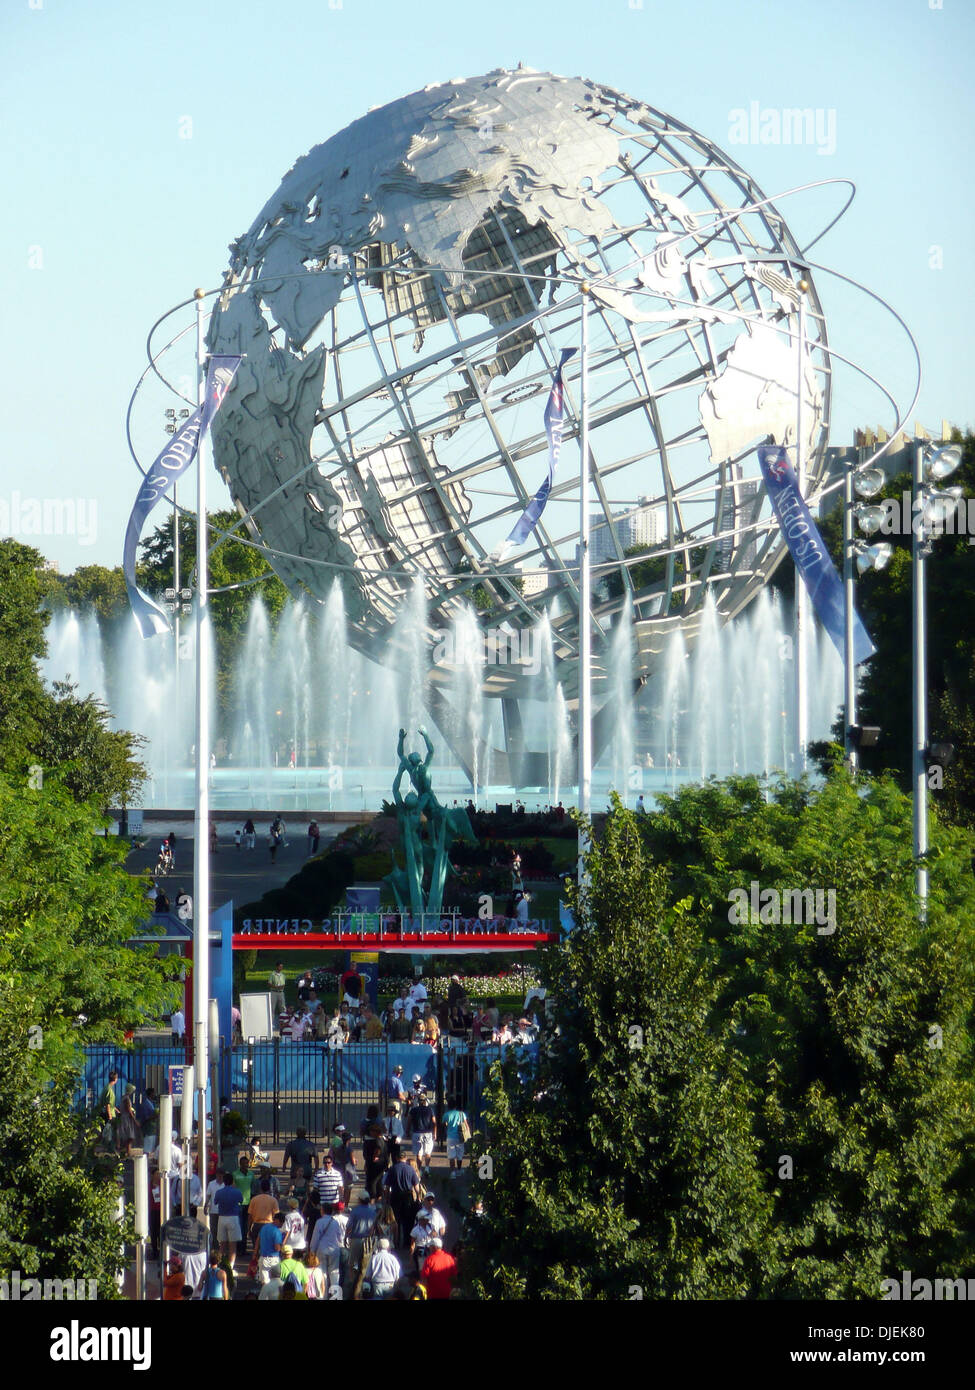 Sep 02, 2007 - New York, NY, USA - Overview of the Unisphere from the Arthur Ashe Stadium at the US Open Tennis Championships on day 7.   (Credit Image: © Susan Mullane/ZUMA Press) - Stock Image